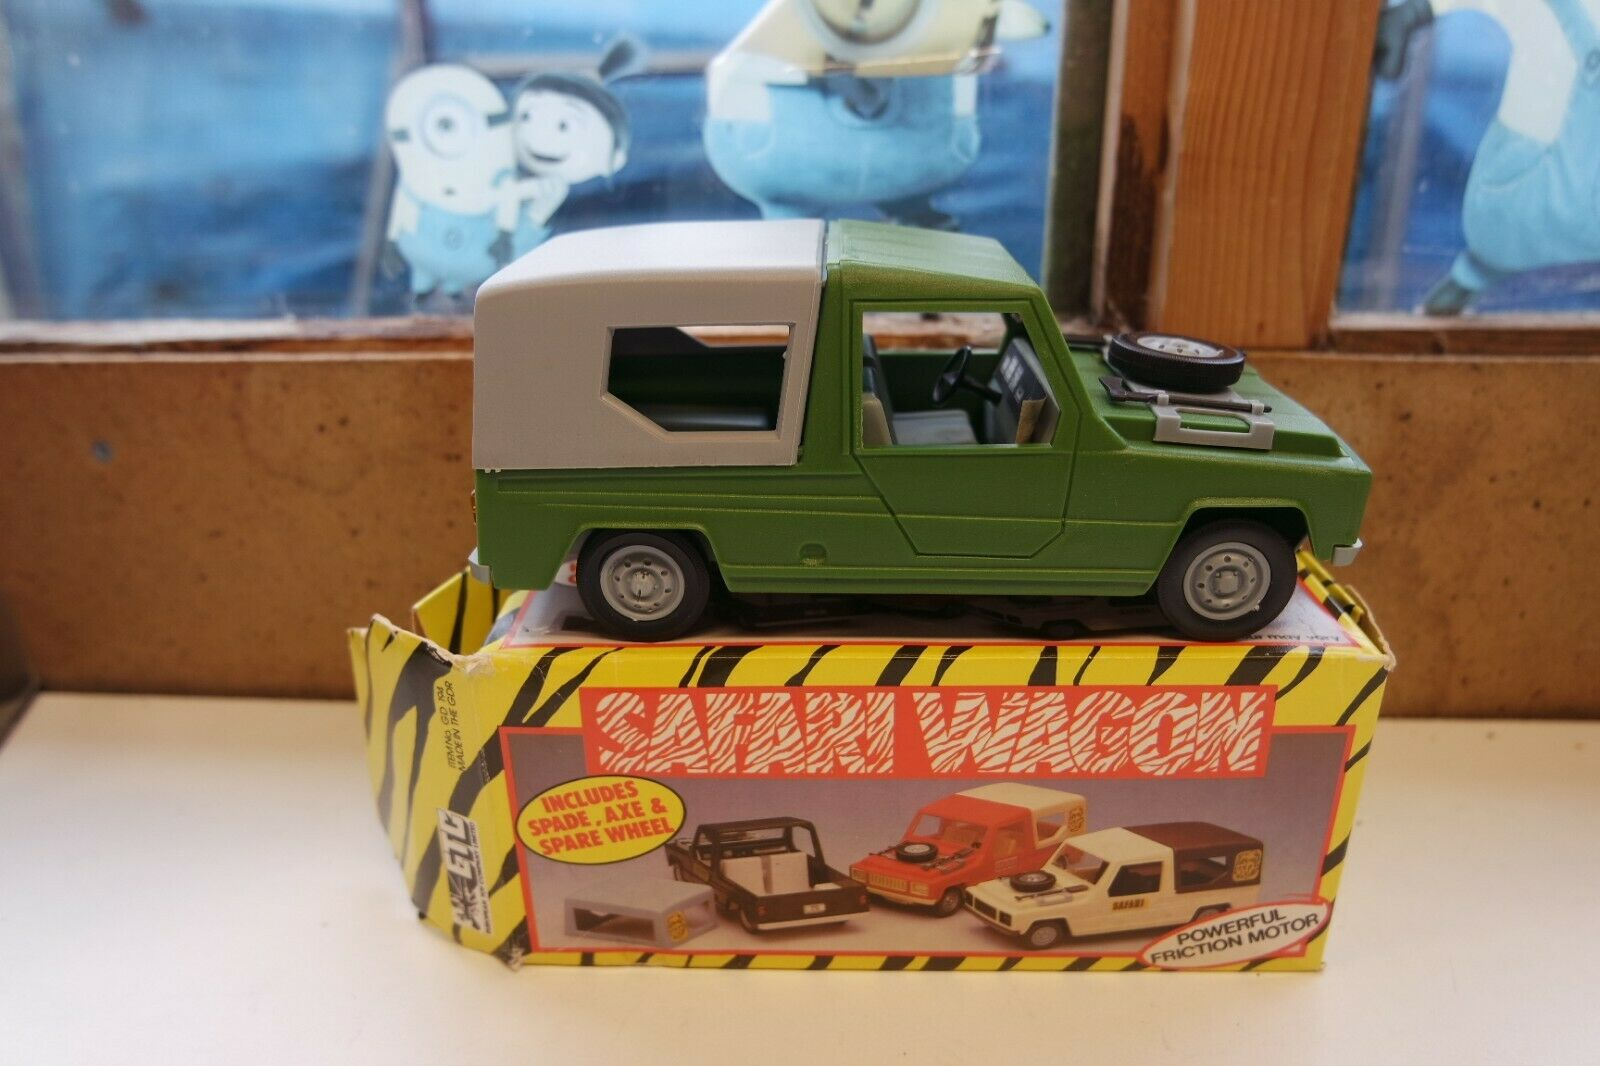 RENAULT RODEO 6 Safari Wagon Large Plastique friction jouet etc Made in GDR 1 20